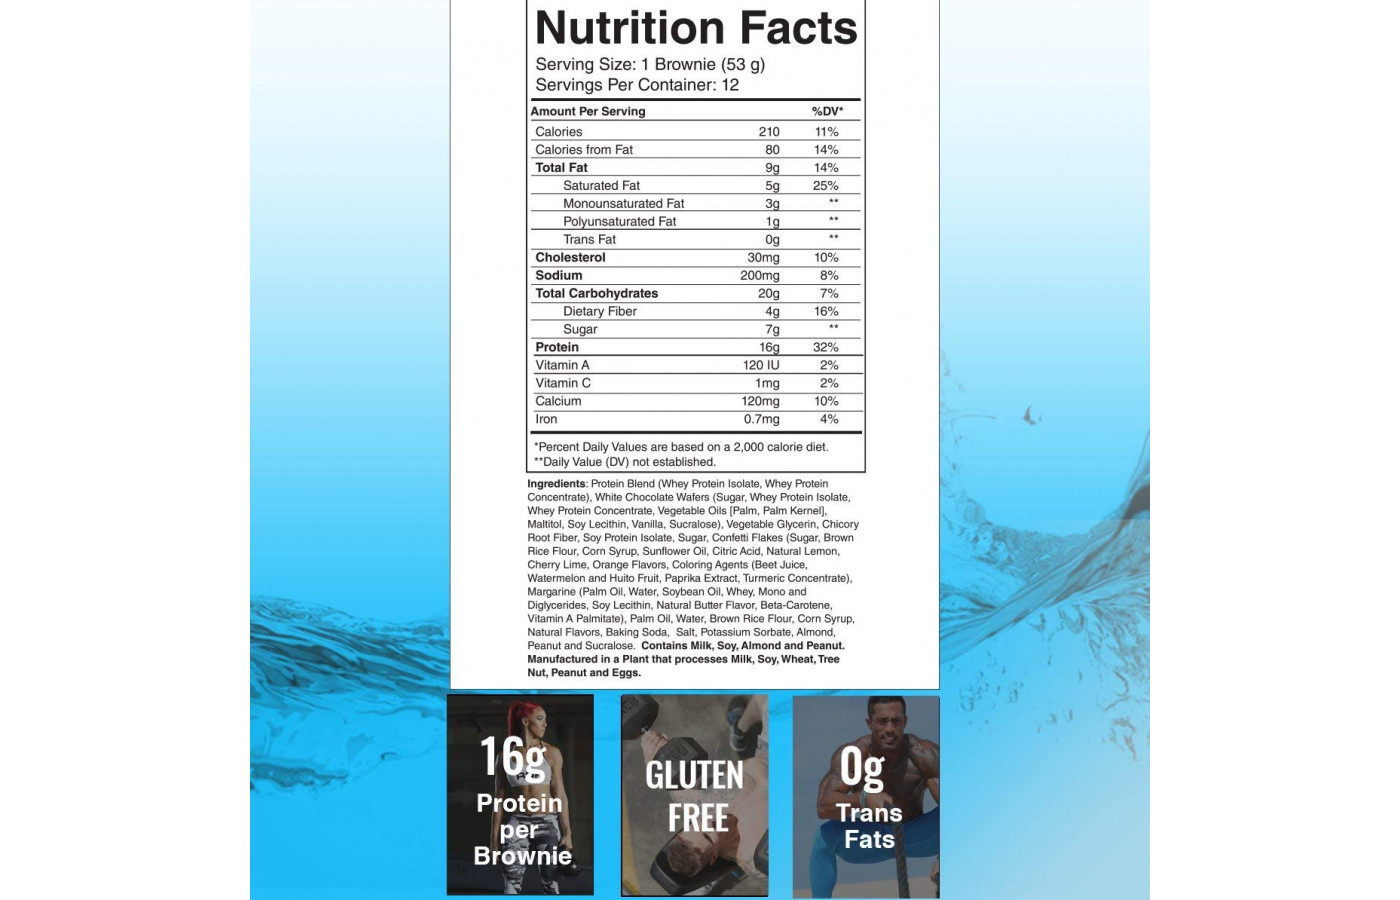 RSP Protein Brownie Bday Cake Nutrition Facts